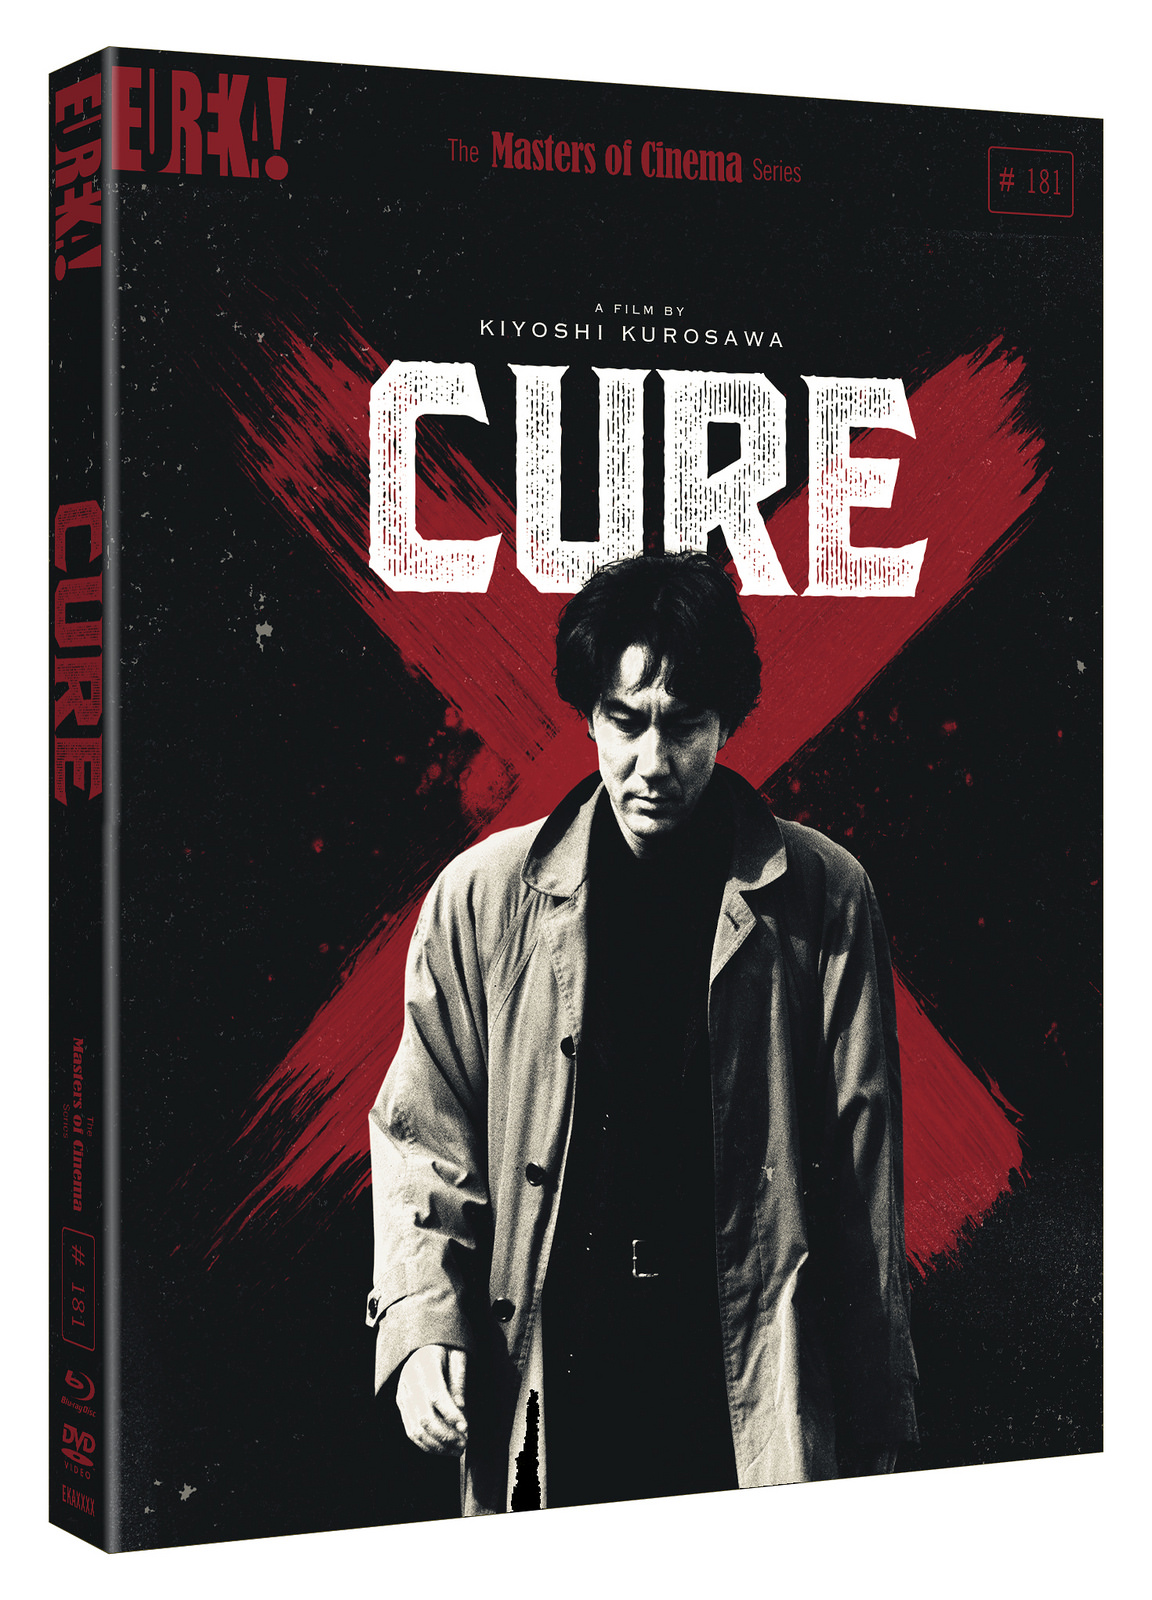 Blazing Minds is pleased to get together with Eureka Entertainmentagain to bring you the chance to win a copy of their latest release, CURE [Kyua], Kiyoshi Kurosawa's mesmerising and hypnotic psychological thriller, on home video for the first time in the UK on 23 April 2018 as part of The Masters of Cinema Series in a Dual Format edition featuring a Limited Edition O-card [First 2000 copies only].